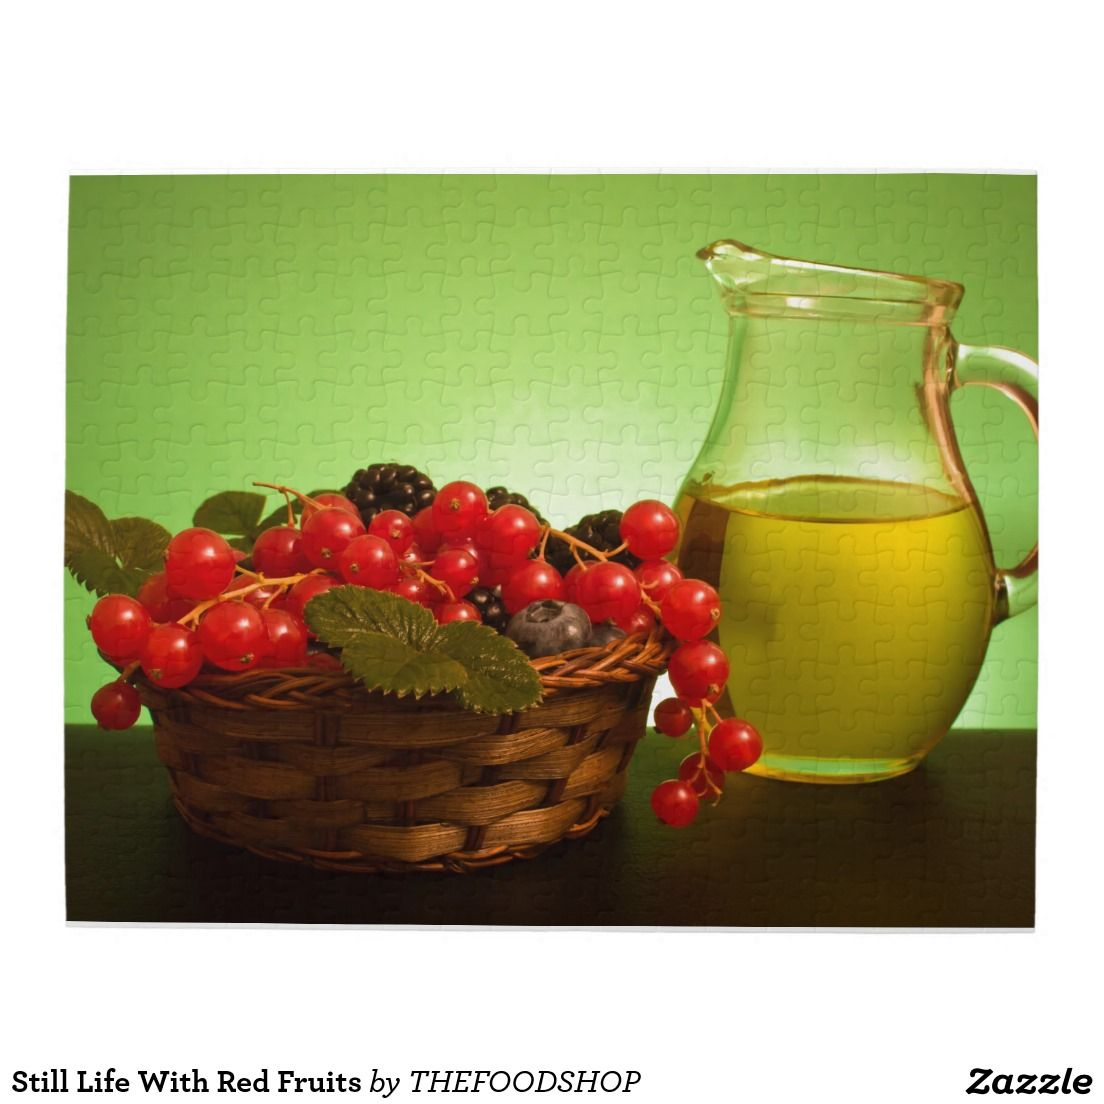 #StillLife With #Red #Fruits #Puzzle #wine #food #foodphotography #Zazzle